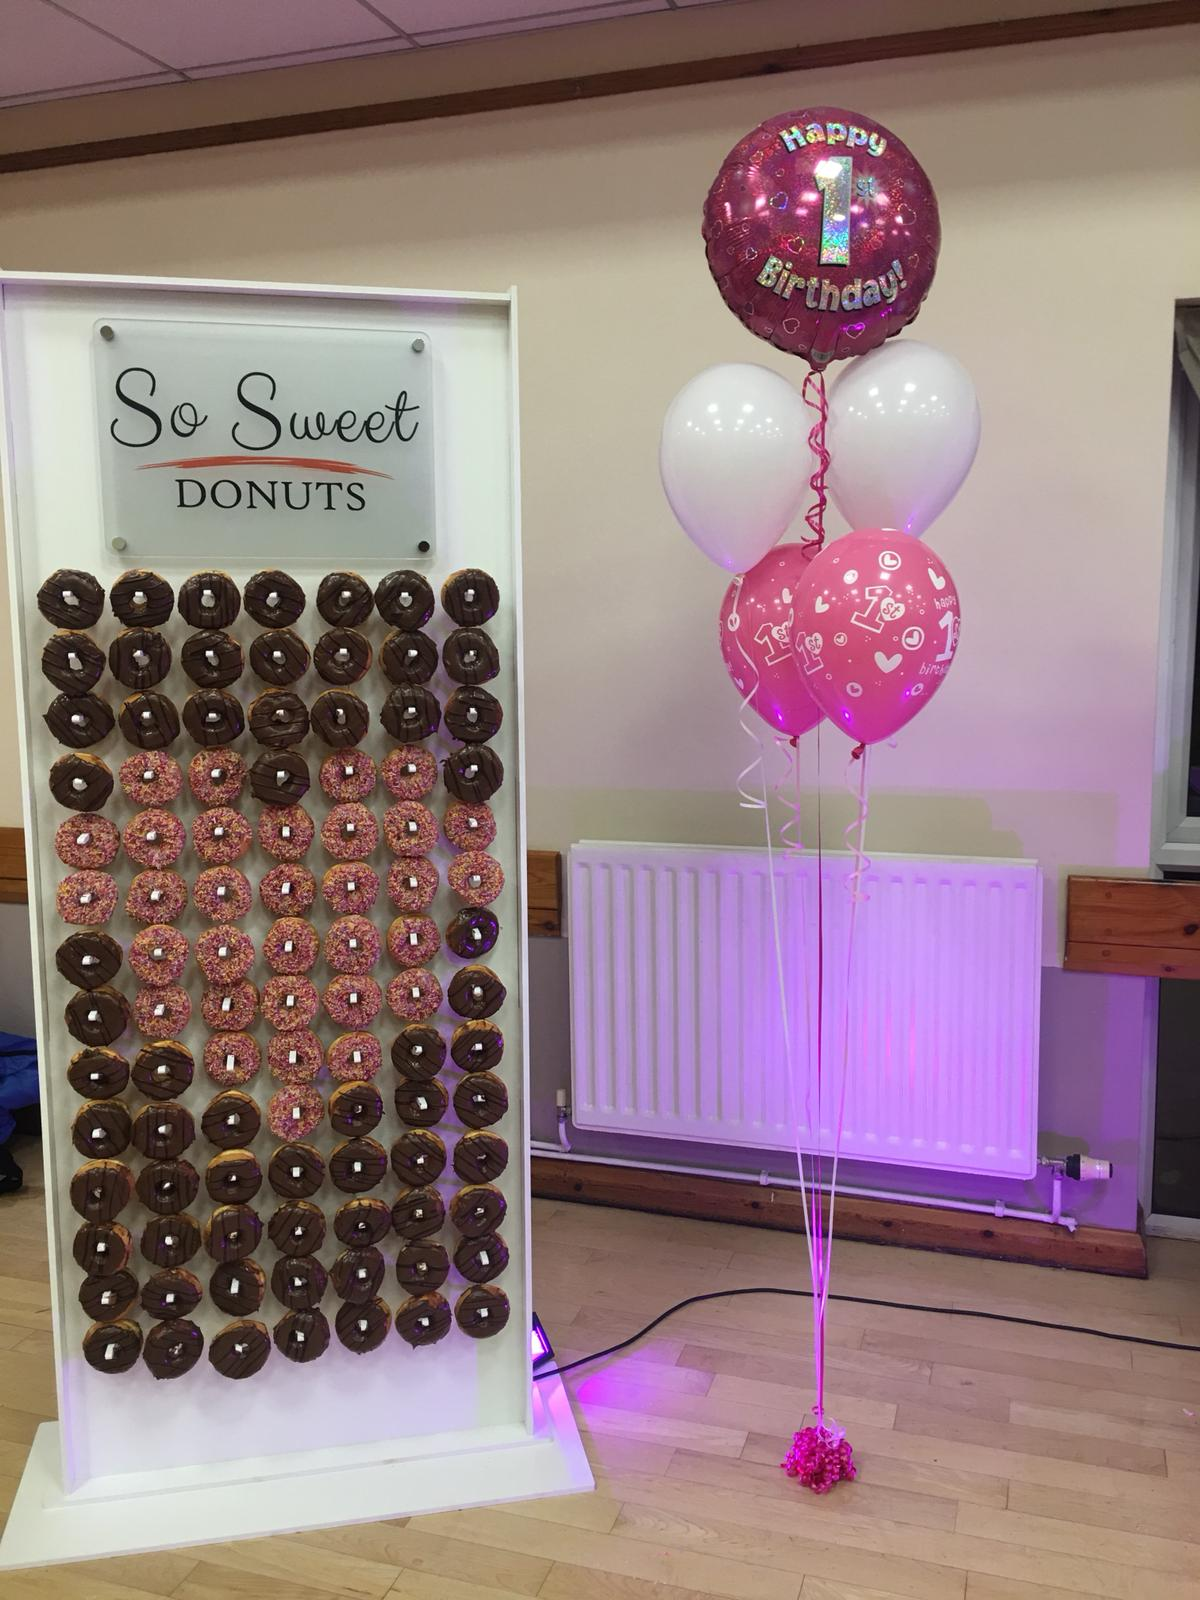 So Sweet Events, Donut Wall